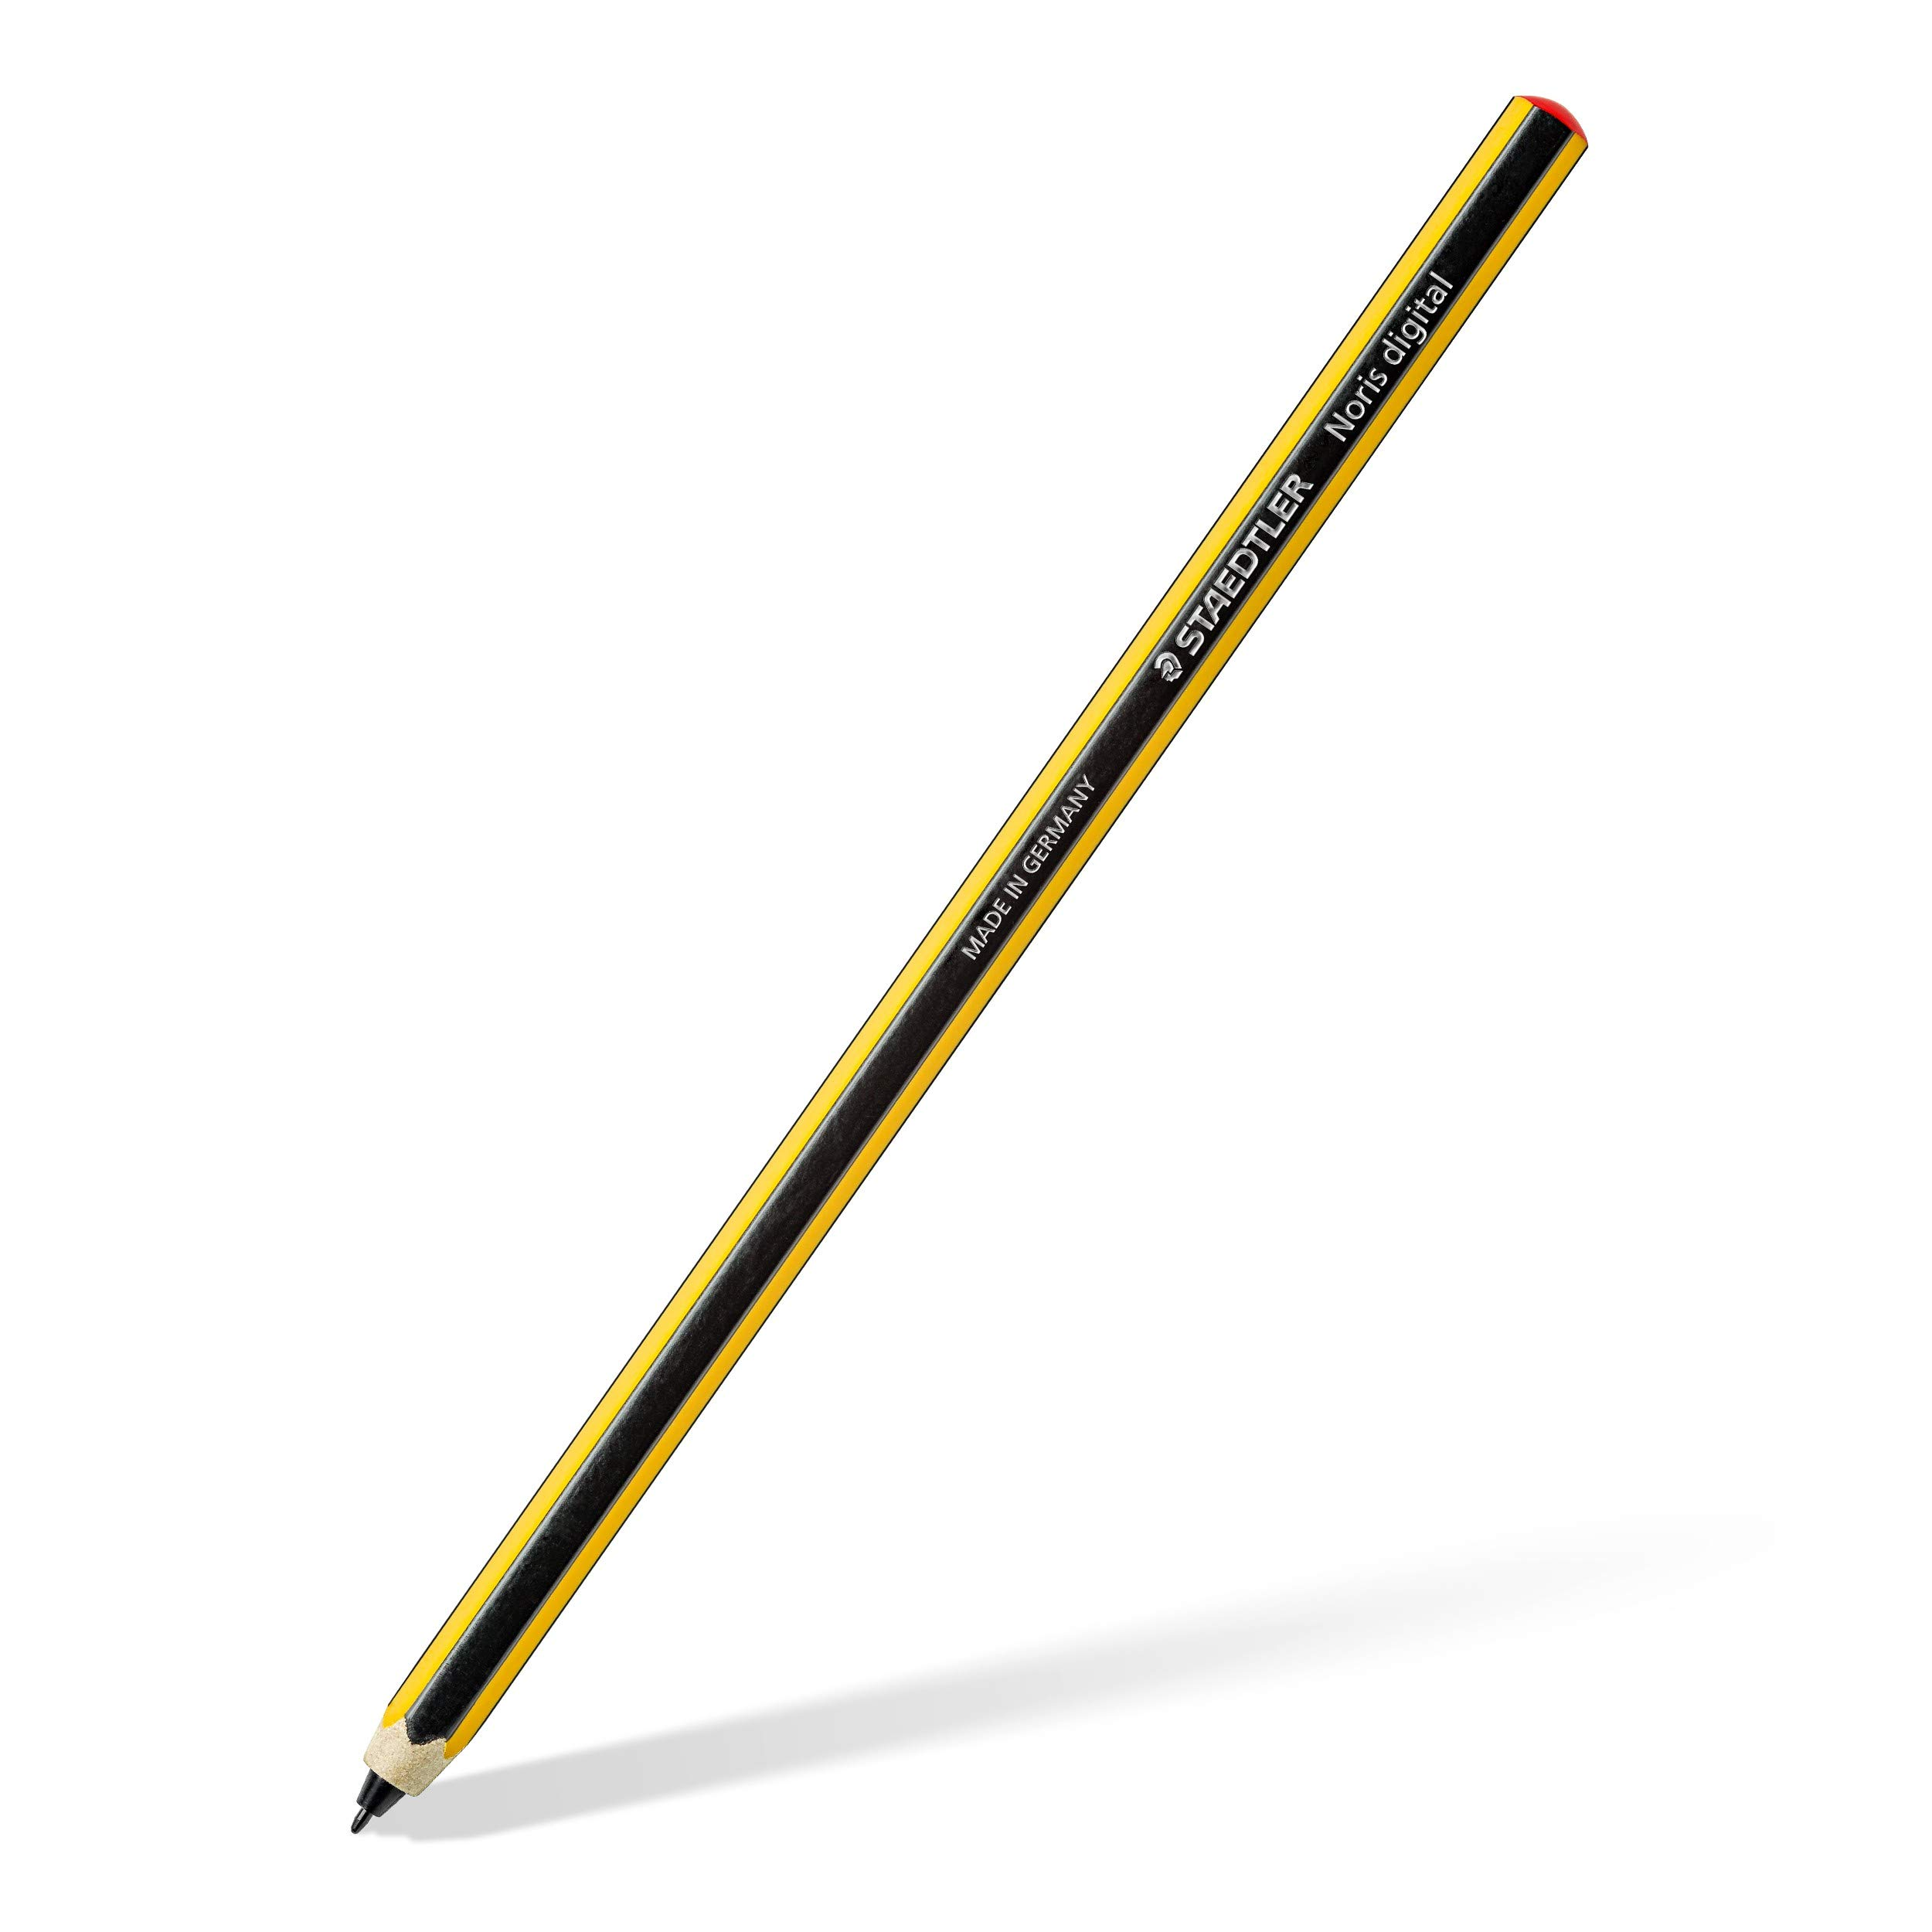 STAEDTLER Staedtler 180 22-1 Noris Digital Stylus; Fine 0, 7 mm Tip and A Pencil Design For Natual Writing on EMR Touchscreens